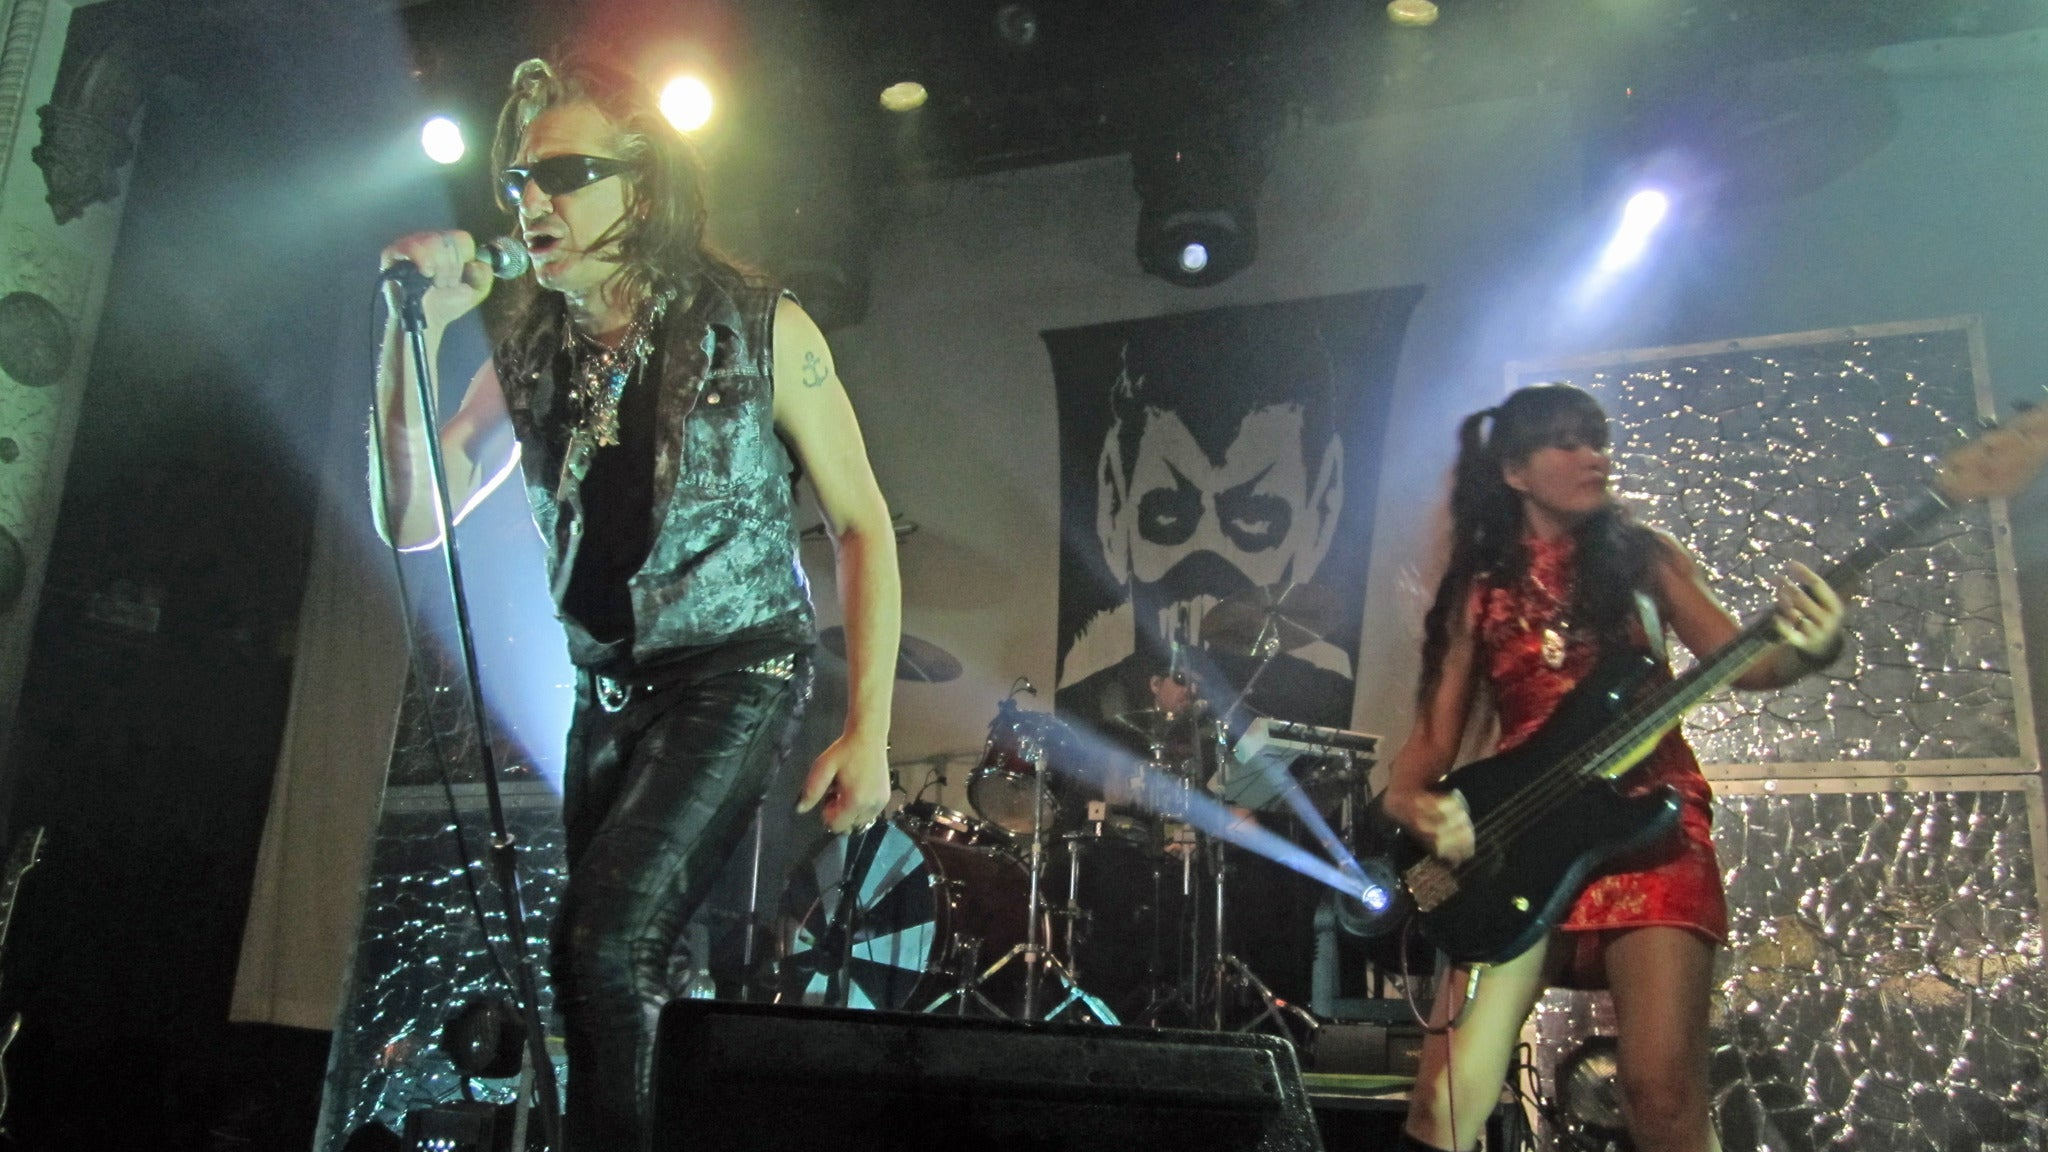 My Life with the Thrill Kill Kult, Conformco, B13 at Wire